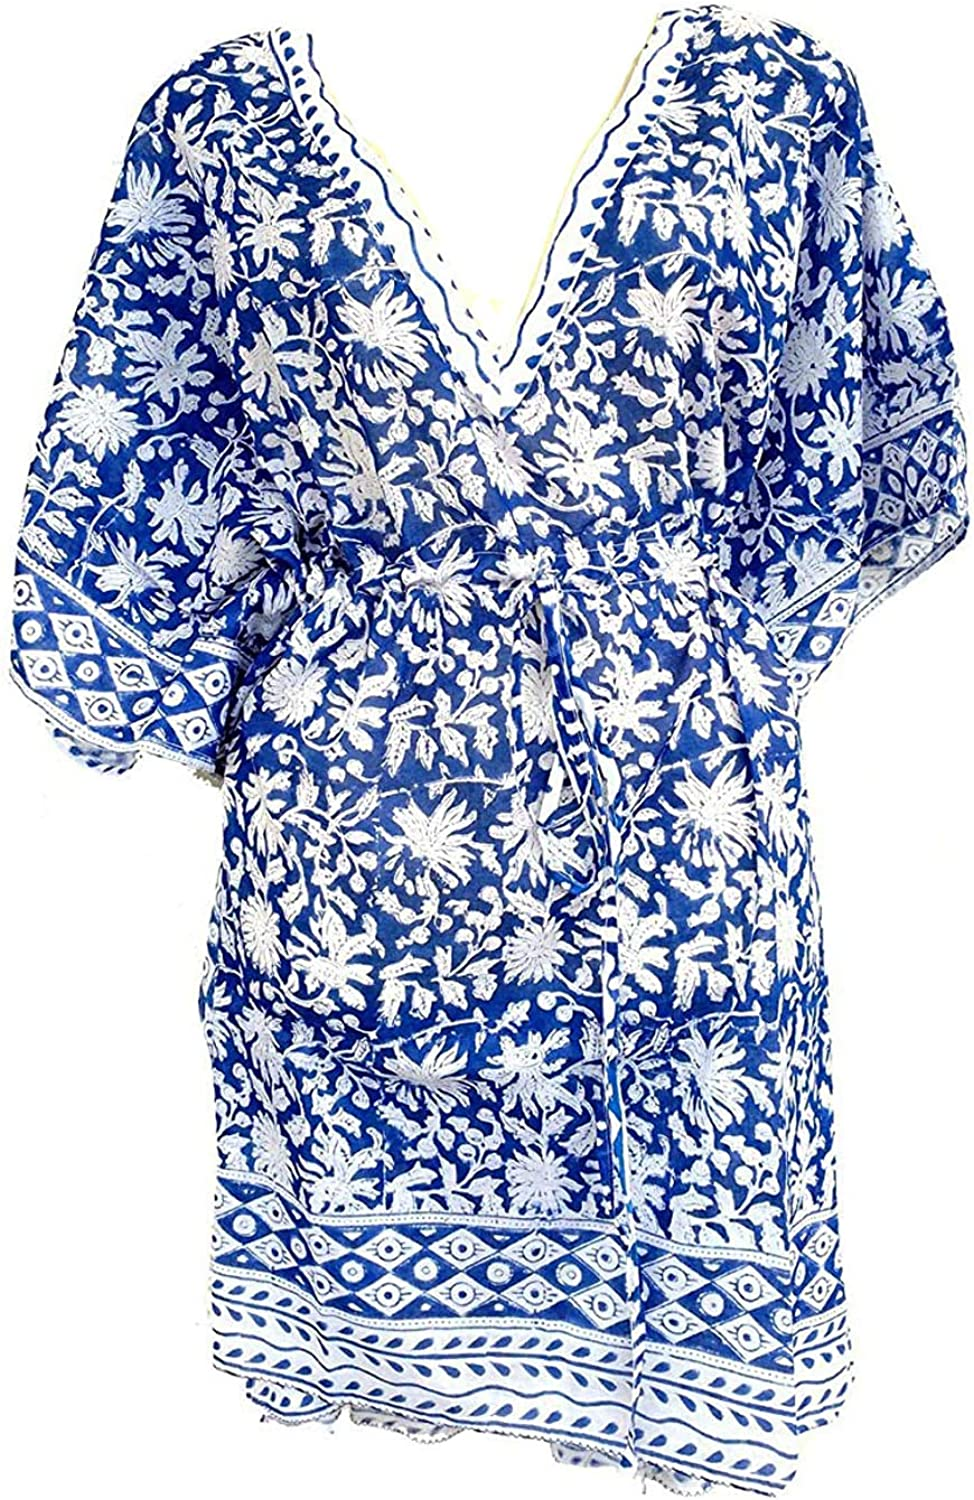 Rastogi Handicrafts 100% Cotton Hand Block Print Swimsuit Cover-up Beach Caftan Women's Print Kaftan 6